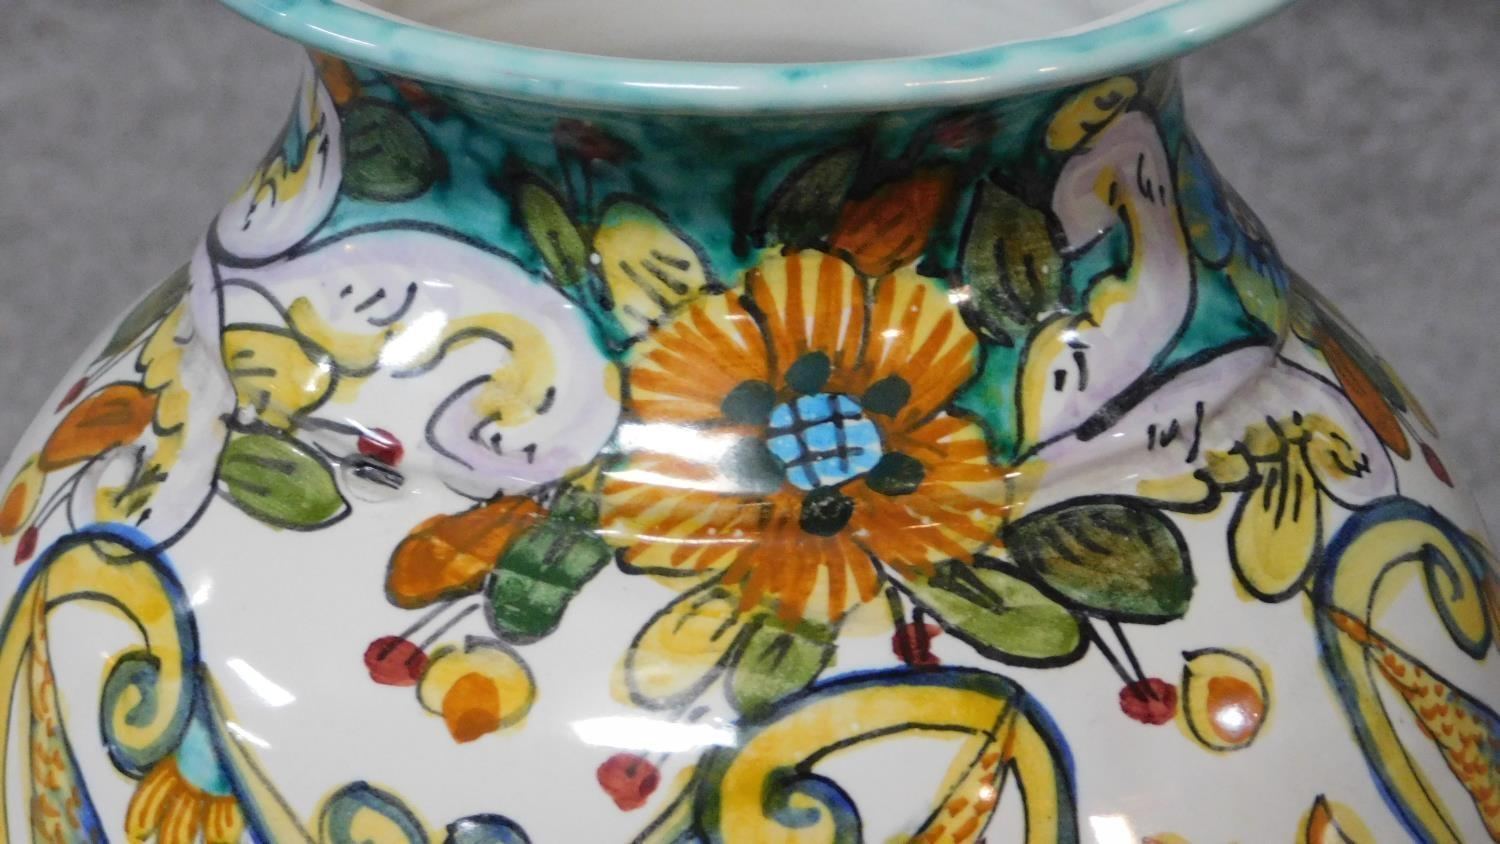 Lot 21 - Three Italian majolica vases with colourful handpainted abstract designs. Inscribed to base. H.